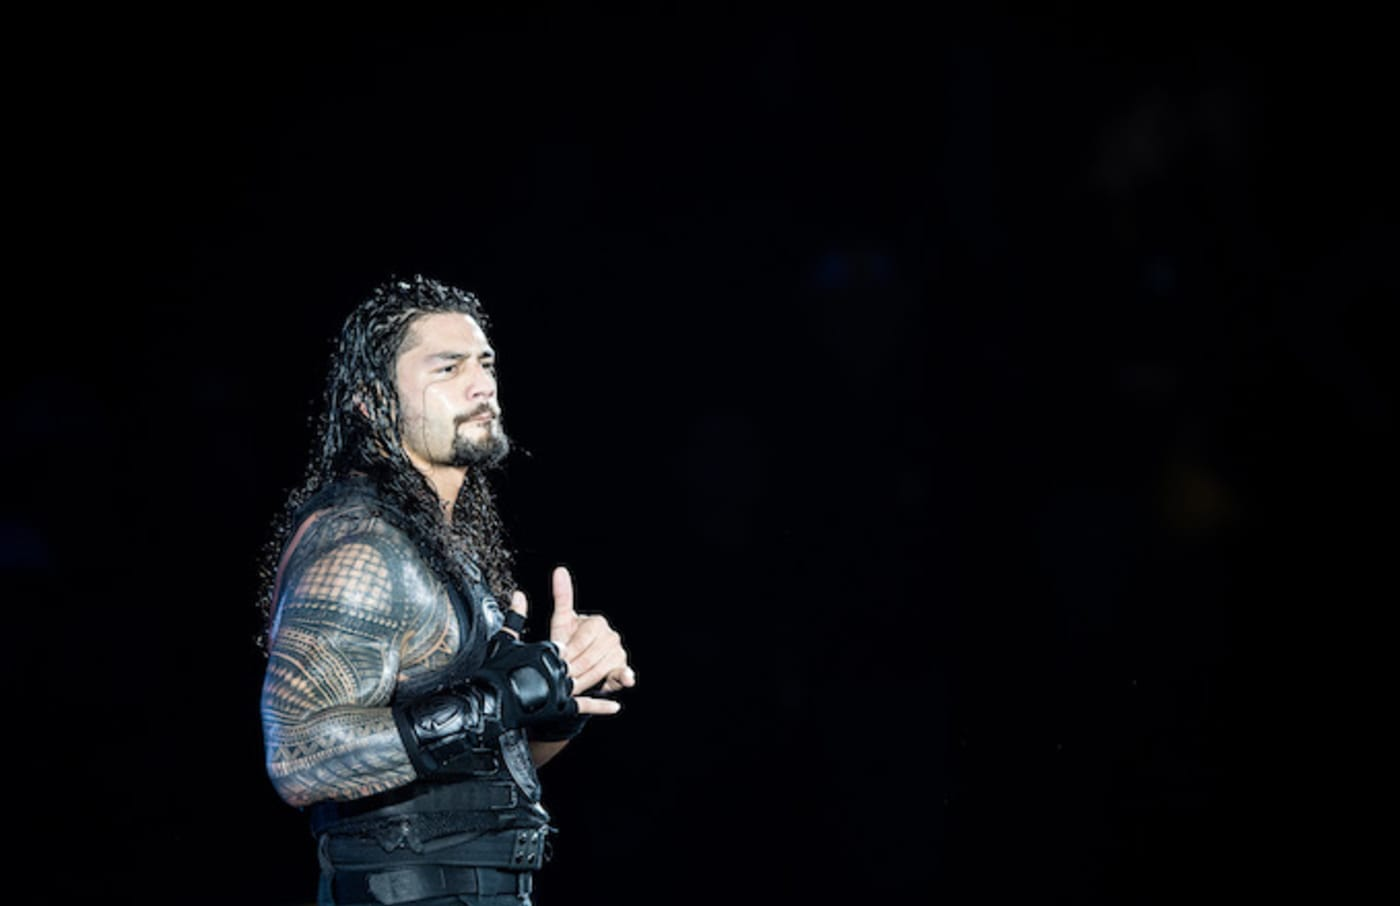 Roman Reigns reacts during to the WWE Live Duesseldorf event.